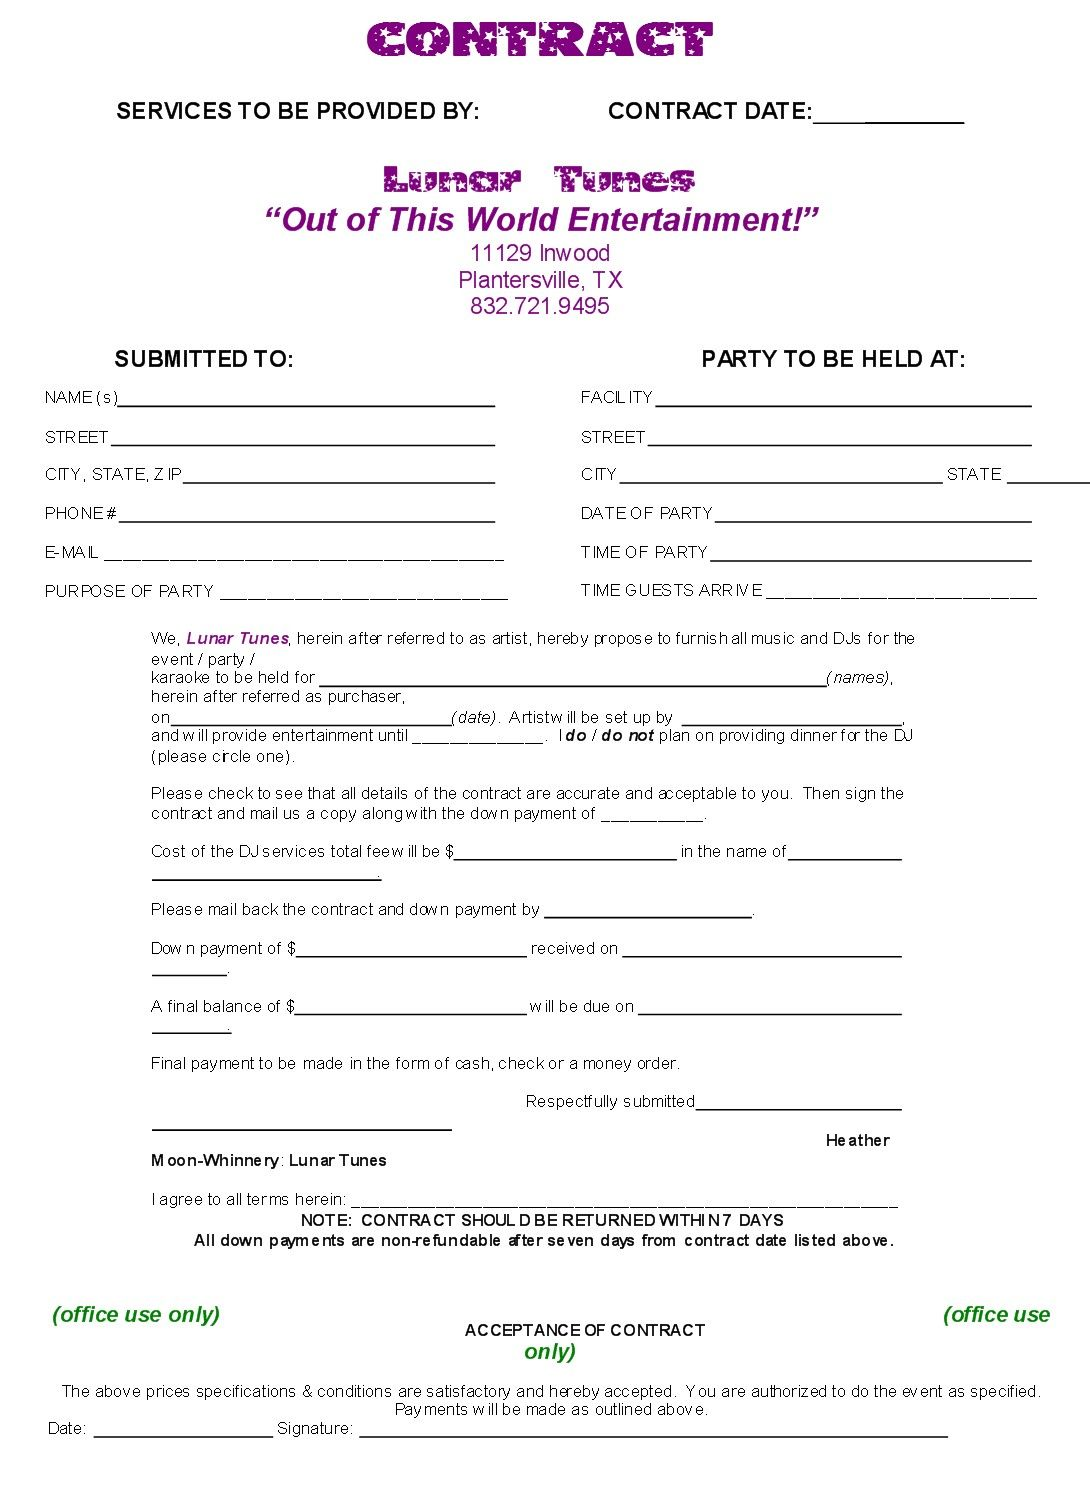 Dj Contract Template | NON COMPETE AGREEMENT - dj agreement | Real ...